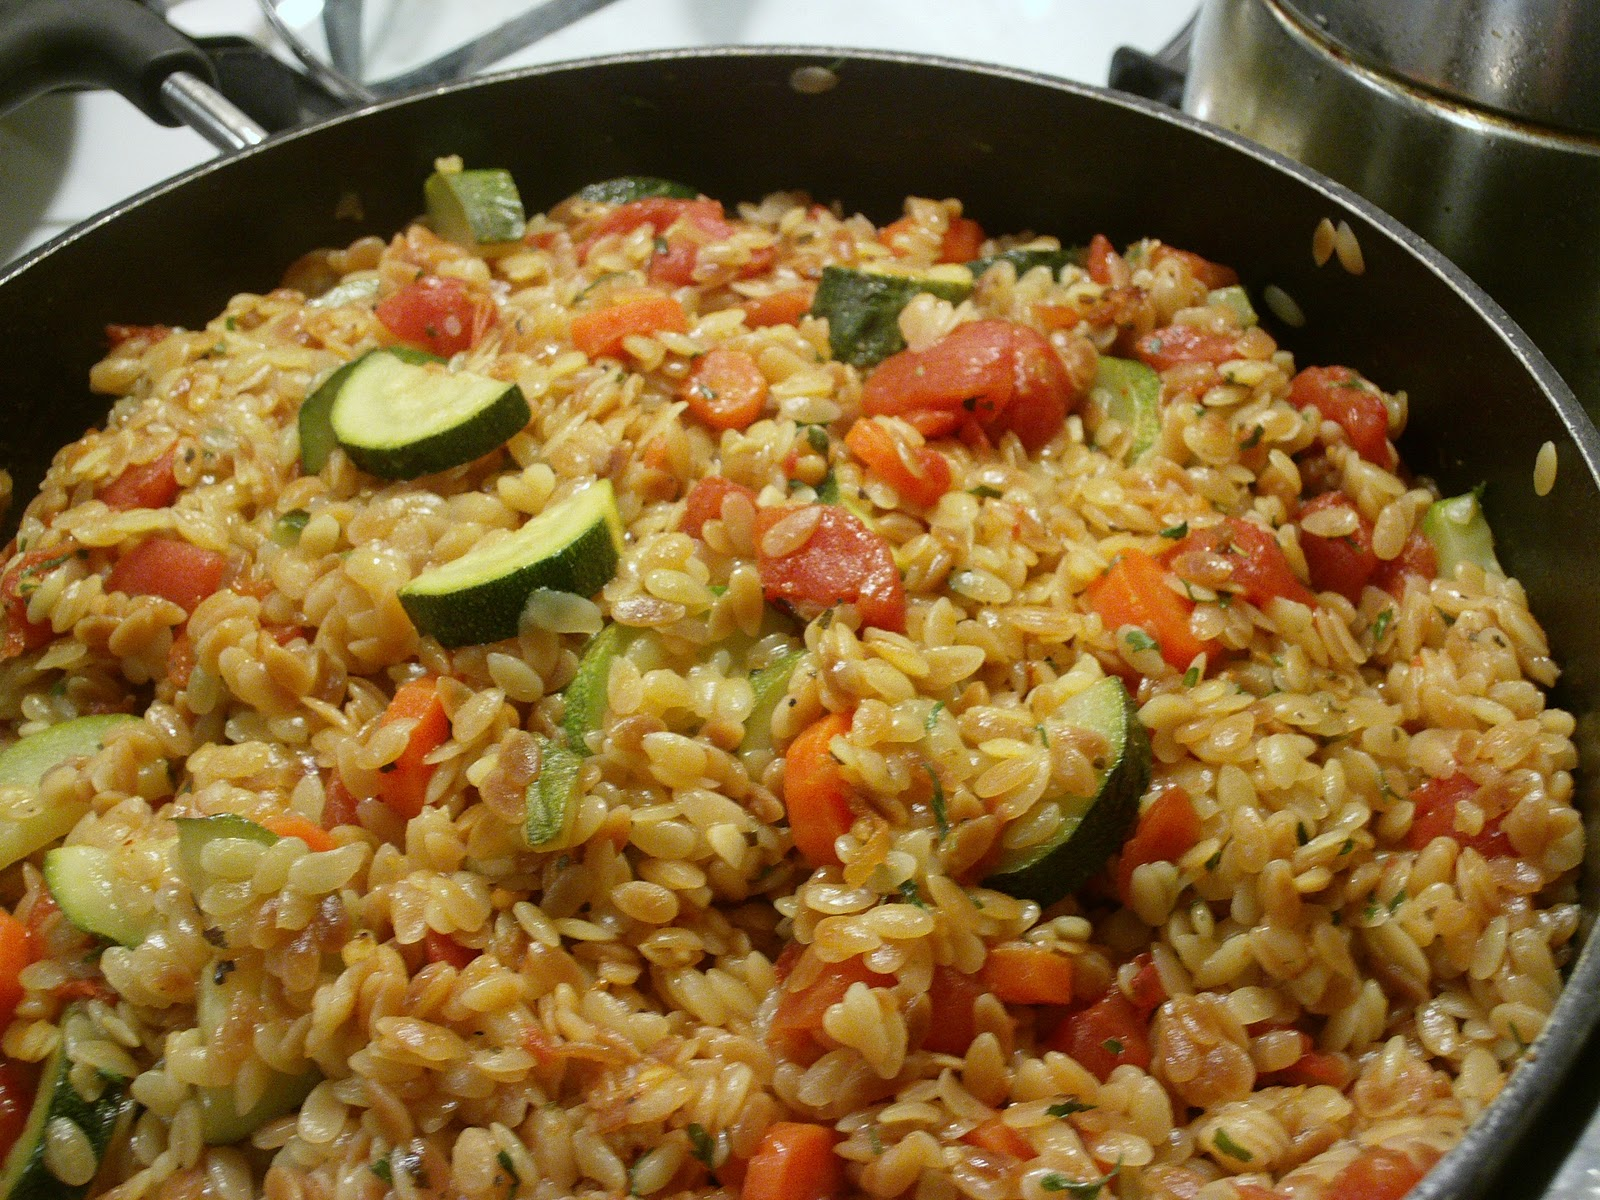 ... Recipes: Toasted Orzo with Lime and Sauteed Peppers and Snow Peas